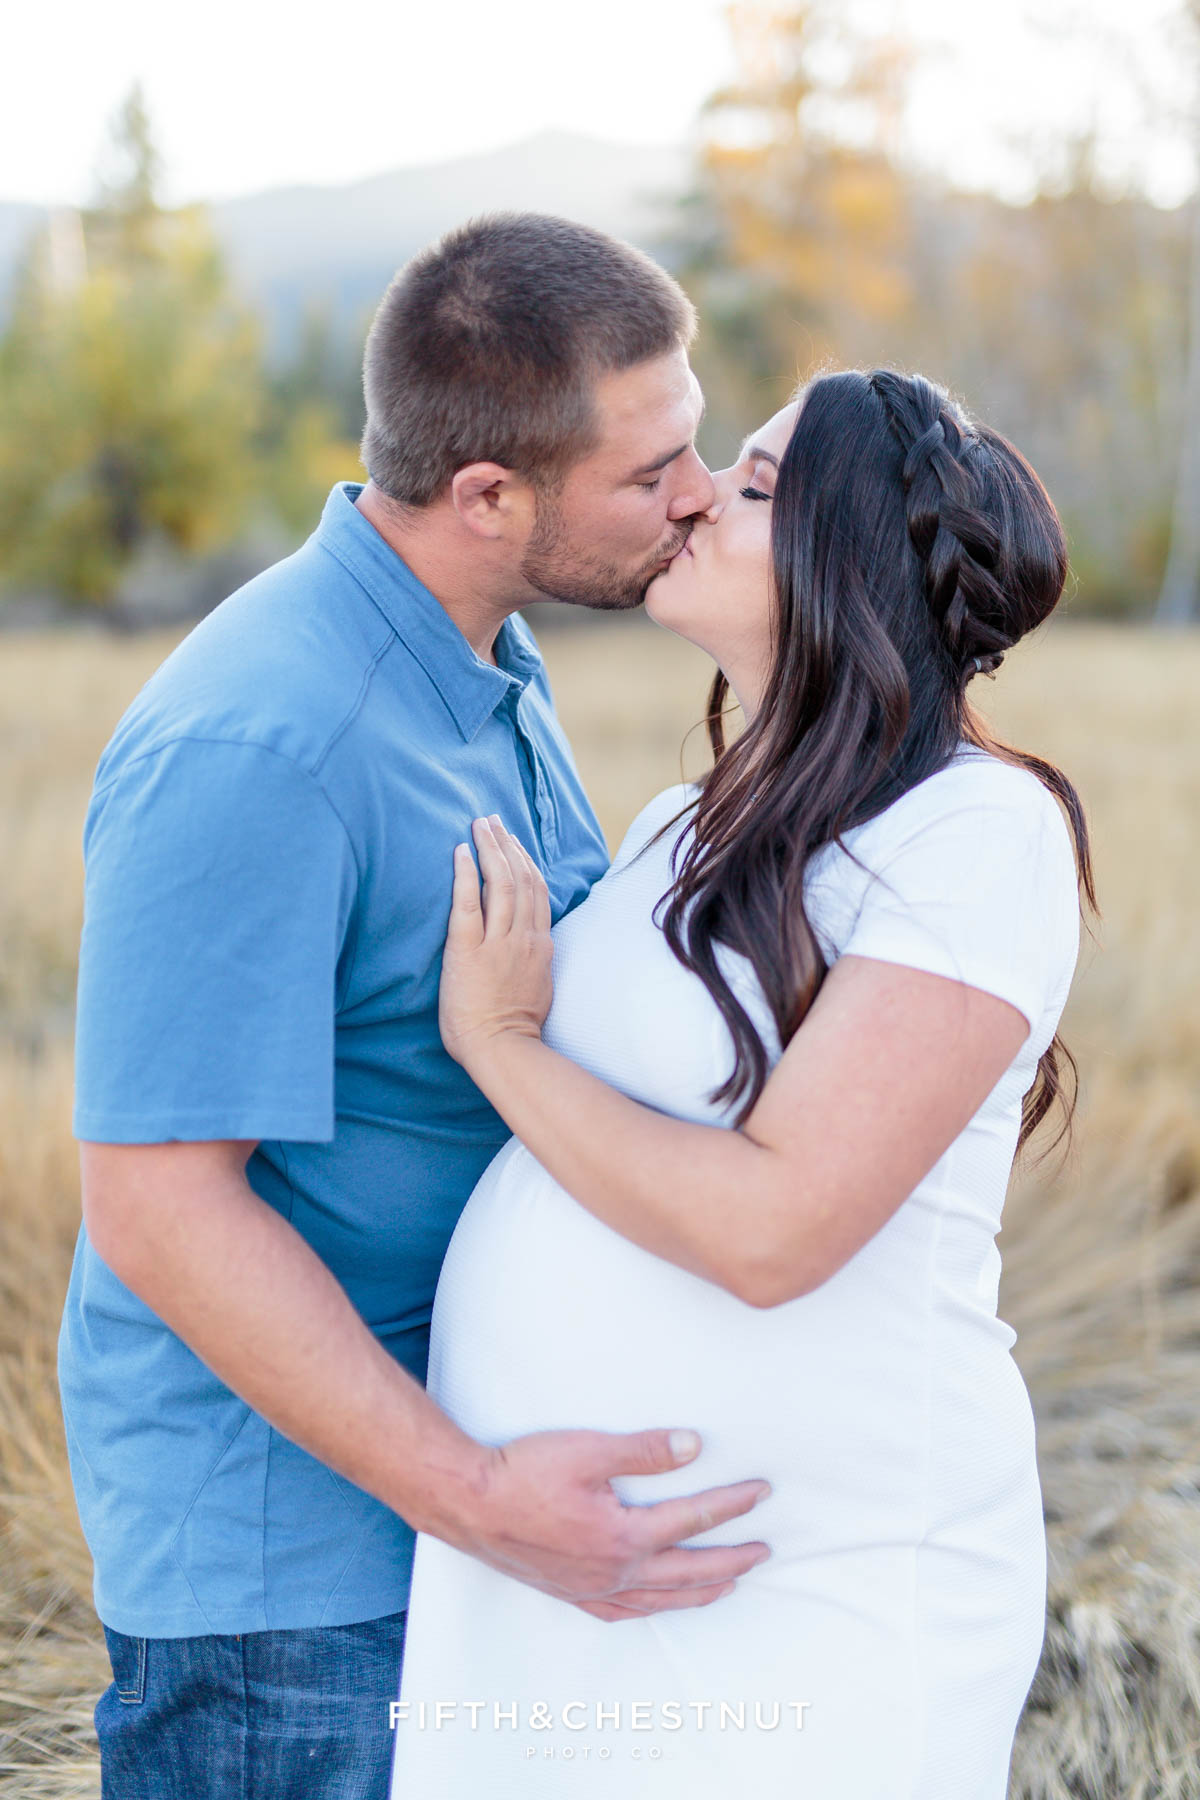 Indiana Chad Fall Maternity Portraits By Reno Maternity Photographer - 10 portrait photos of people before after the photographer kissed them